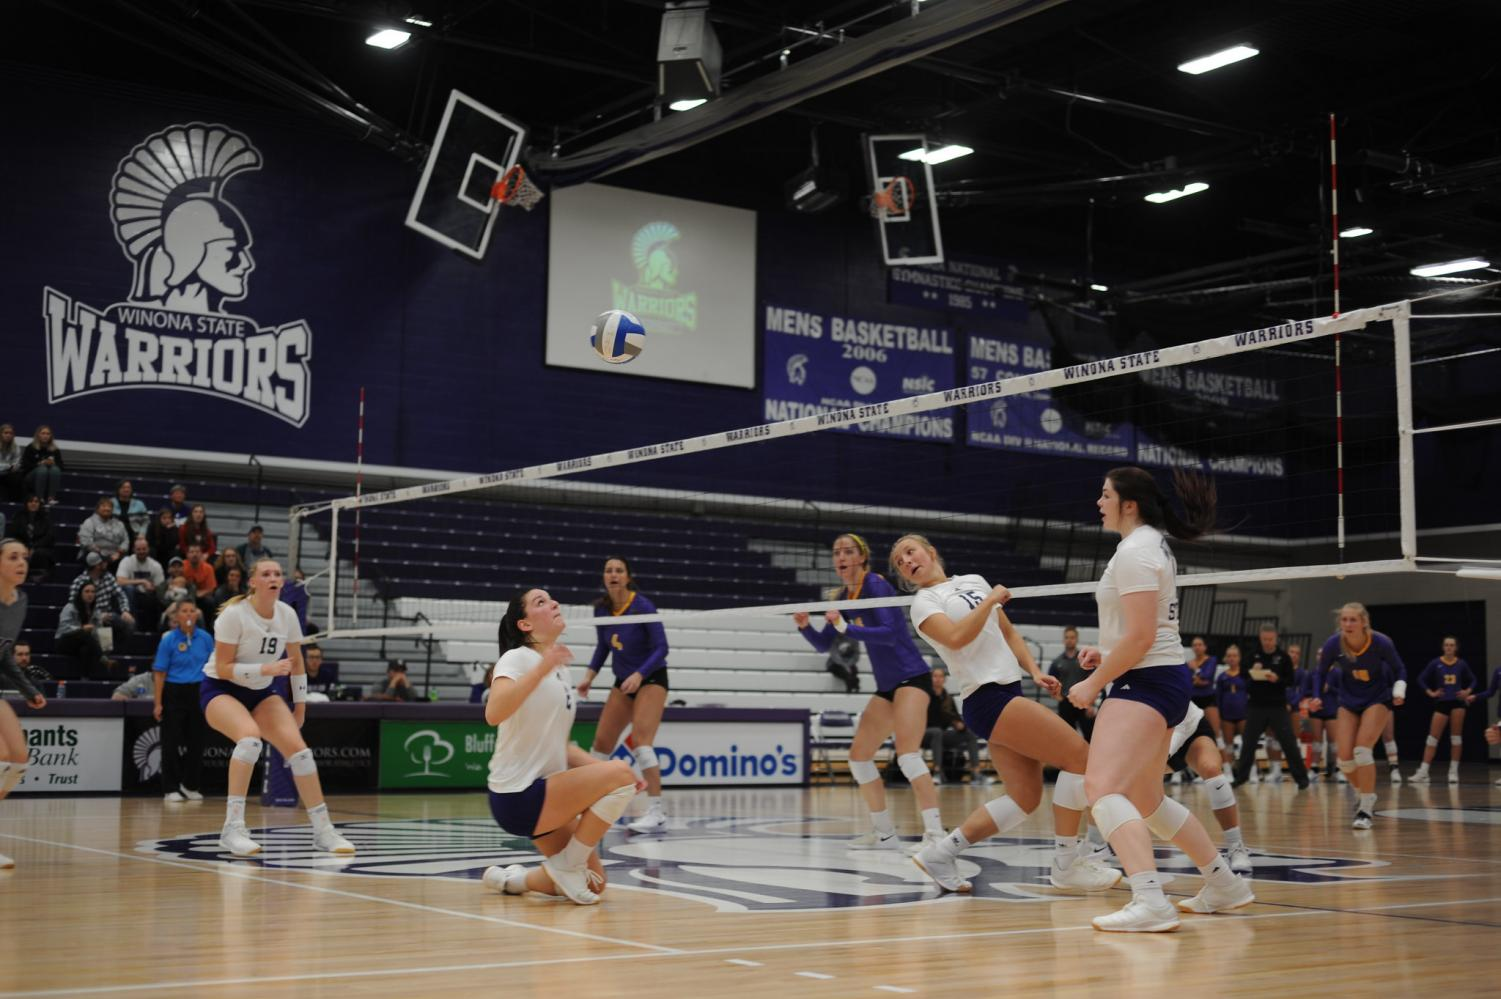 Left to right: Cori Meyers, Bre Maloney, Madison Rizner and Kate Masberg move to return the ball against Minnesota State University, Mankato on Saturday, Nov. 2 where the Warriors came out victorious scoring 3-1. The win brings the team's season record to 18 wins and five losses.